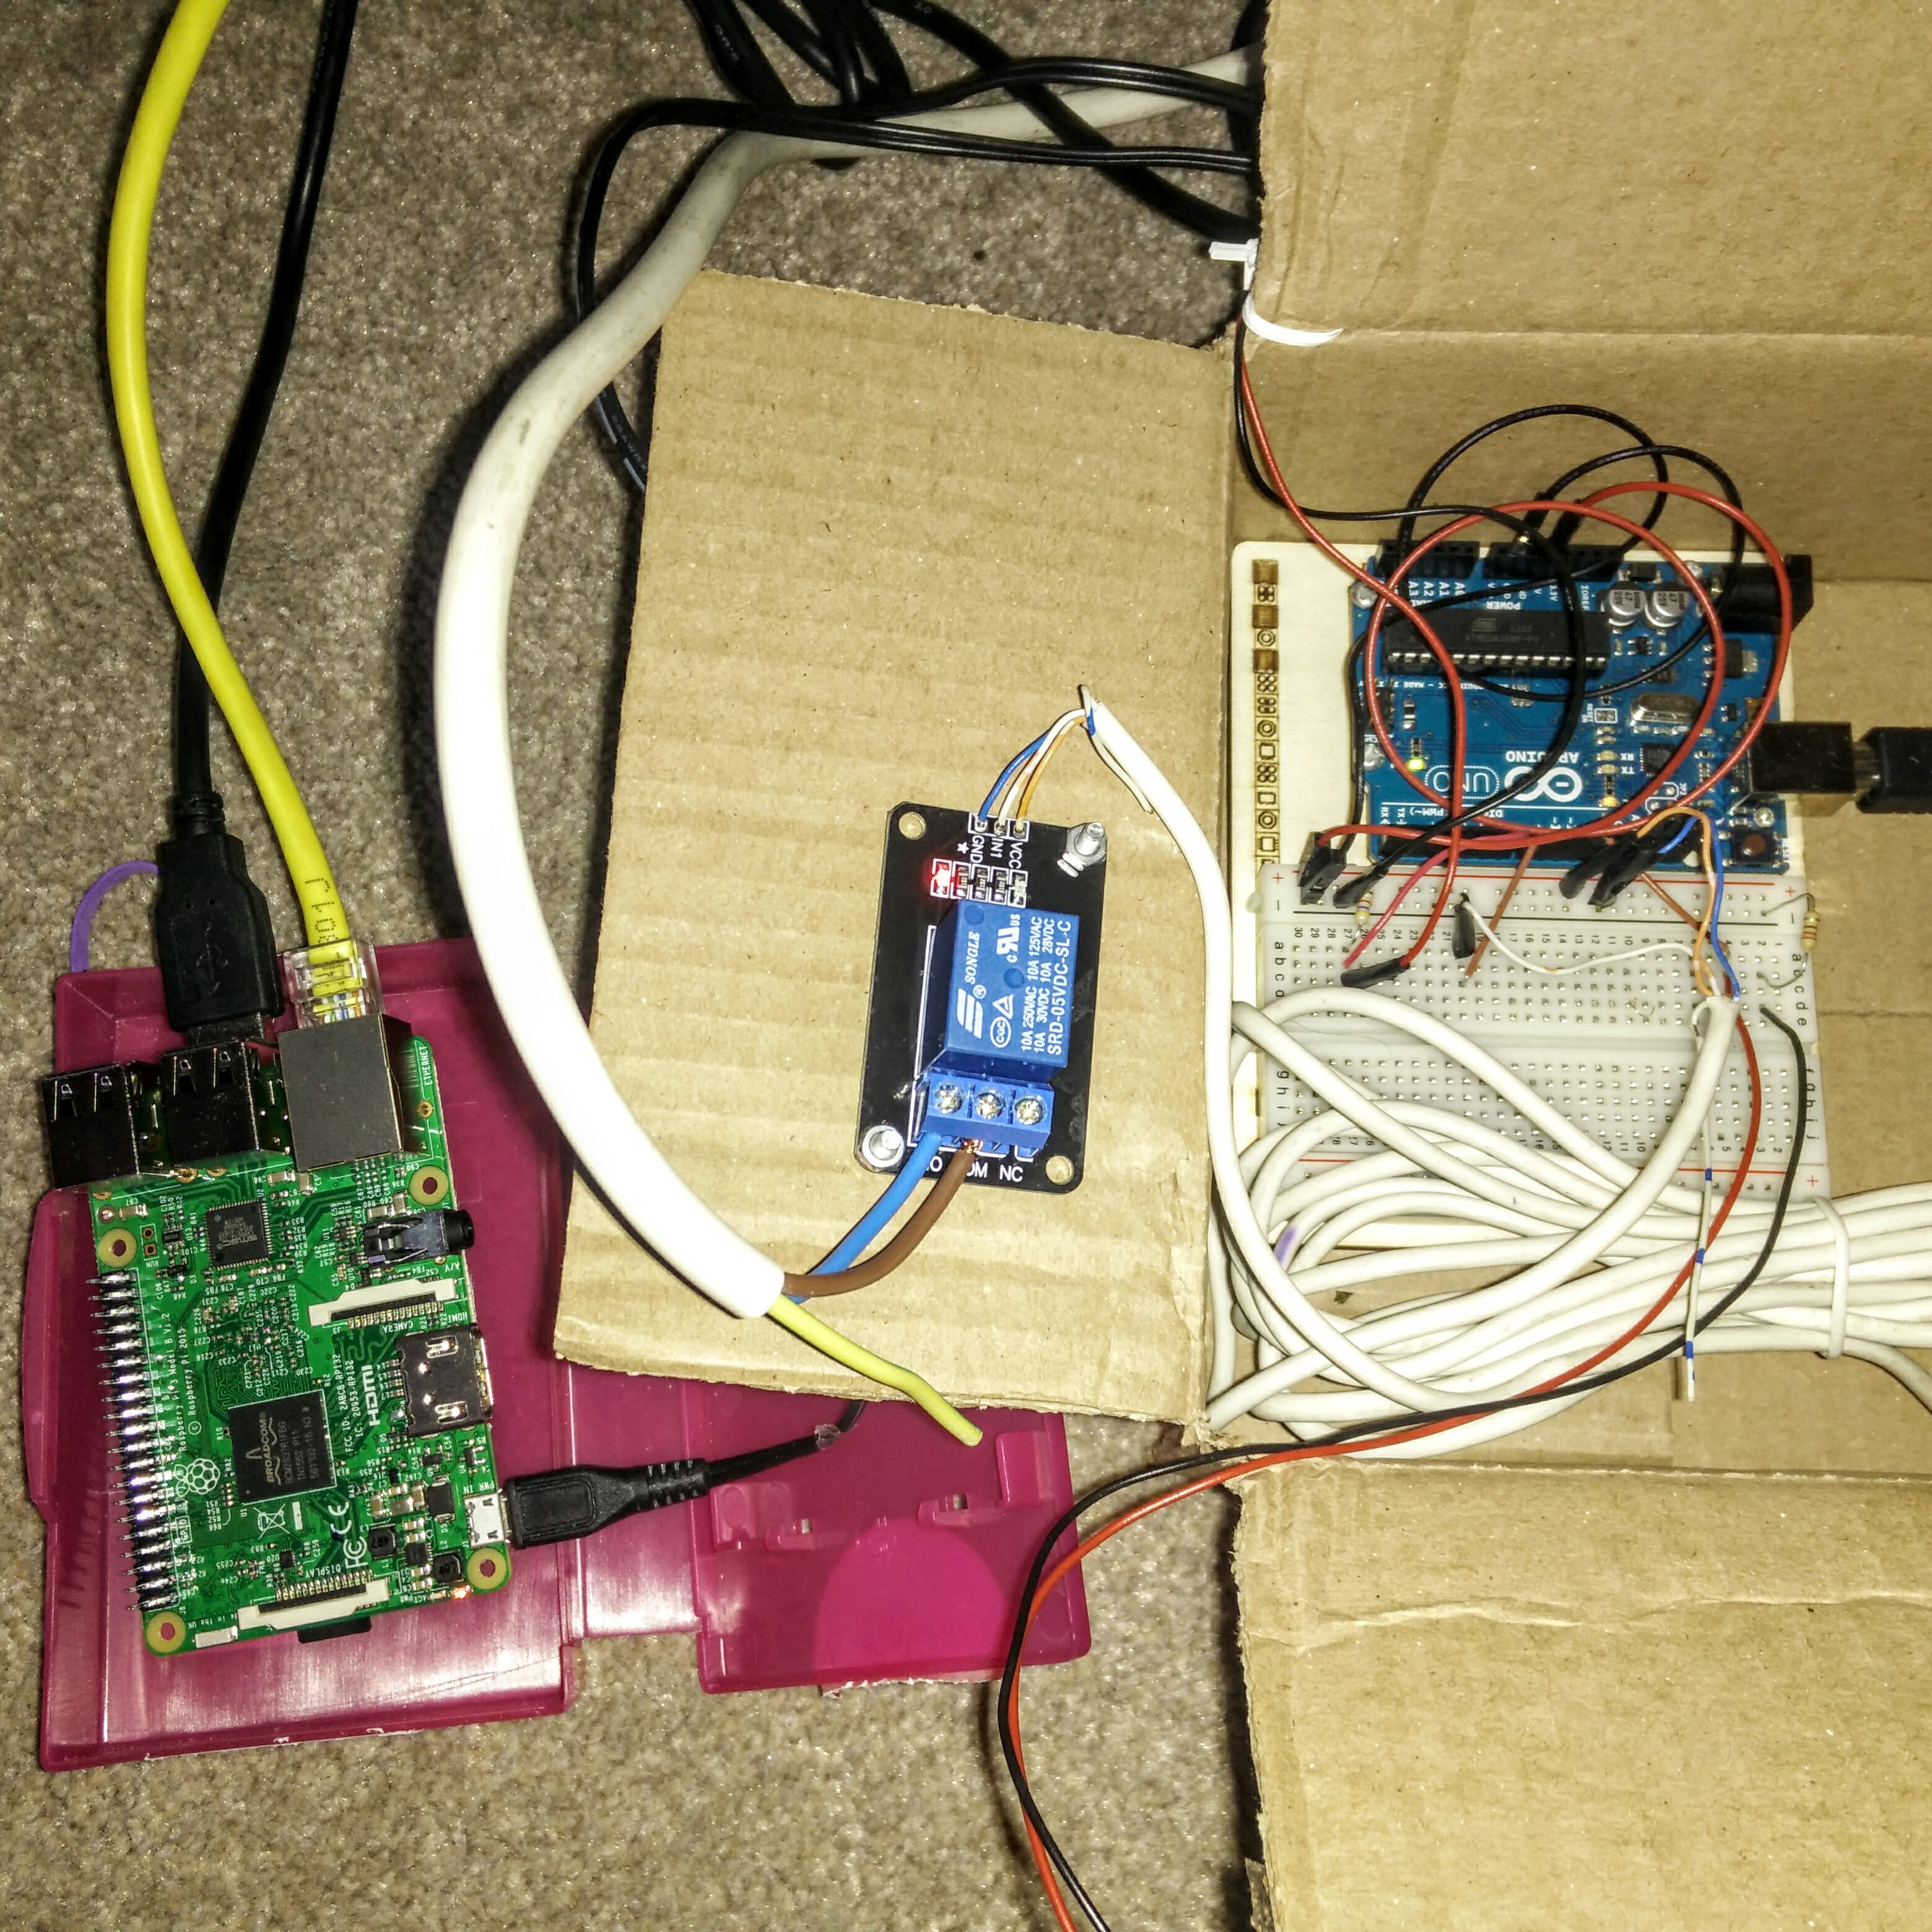 Controlling central heating with Arduino and Raspberry Pi